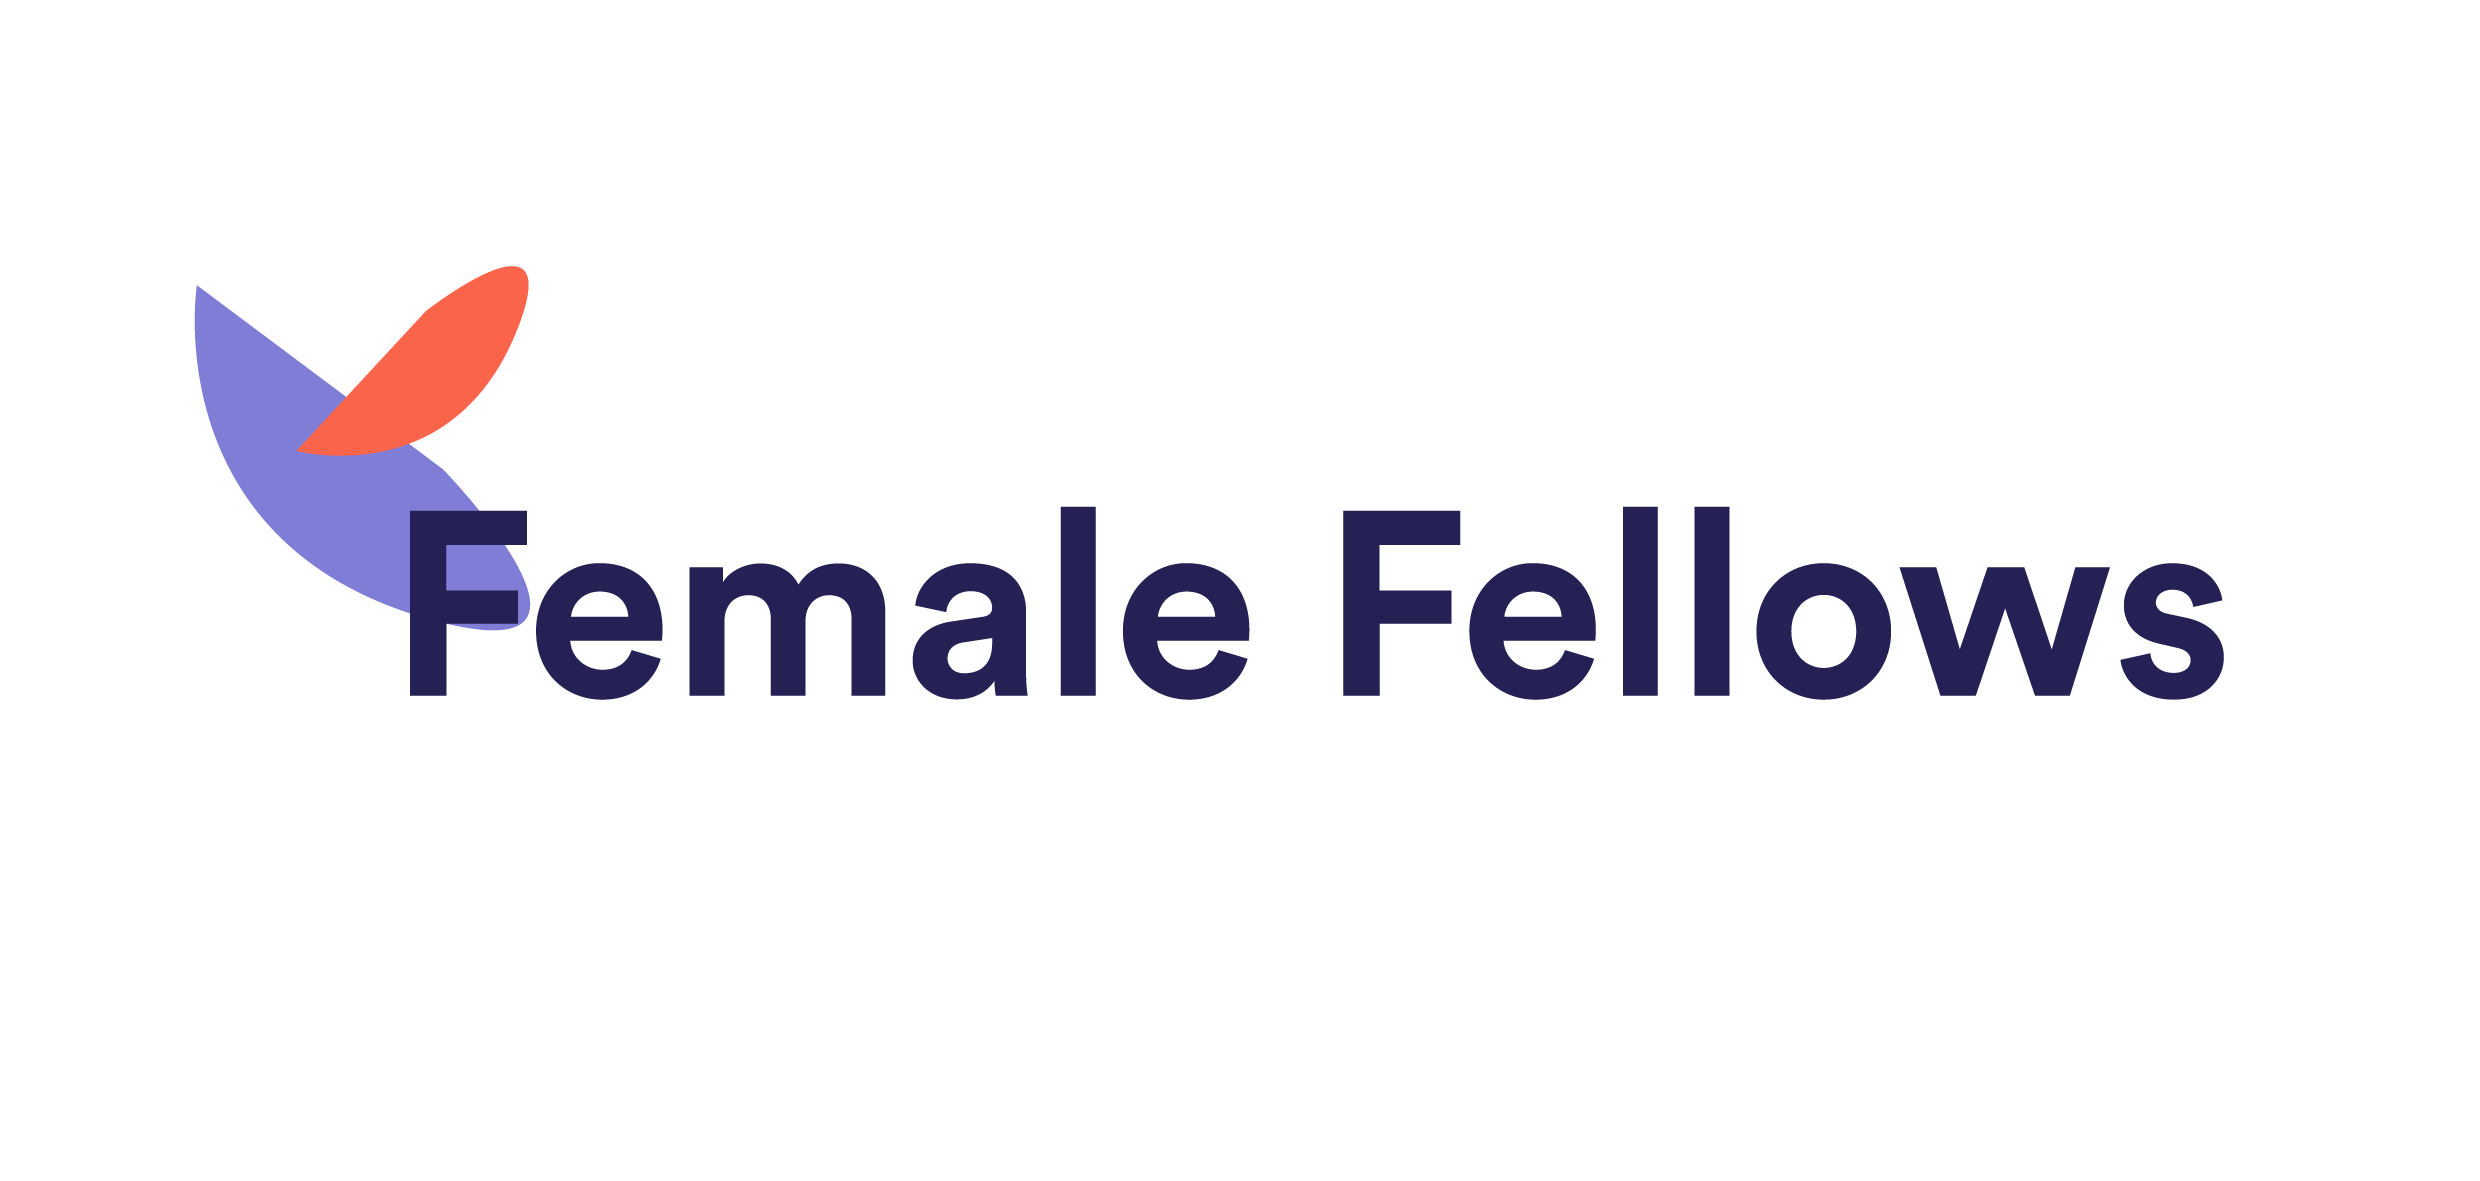 Female Fellows